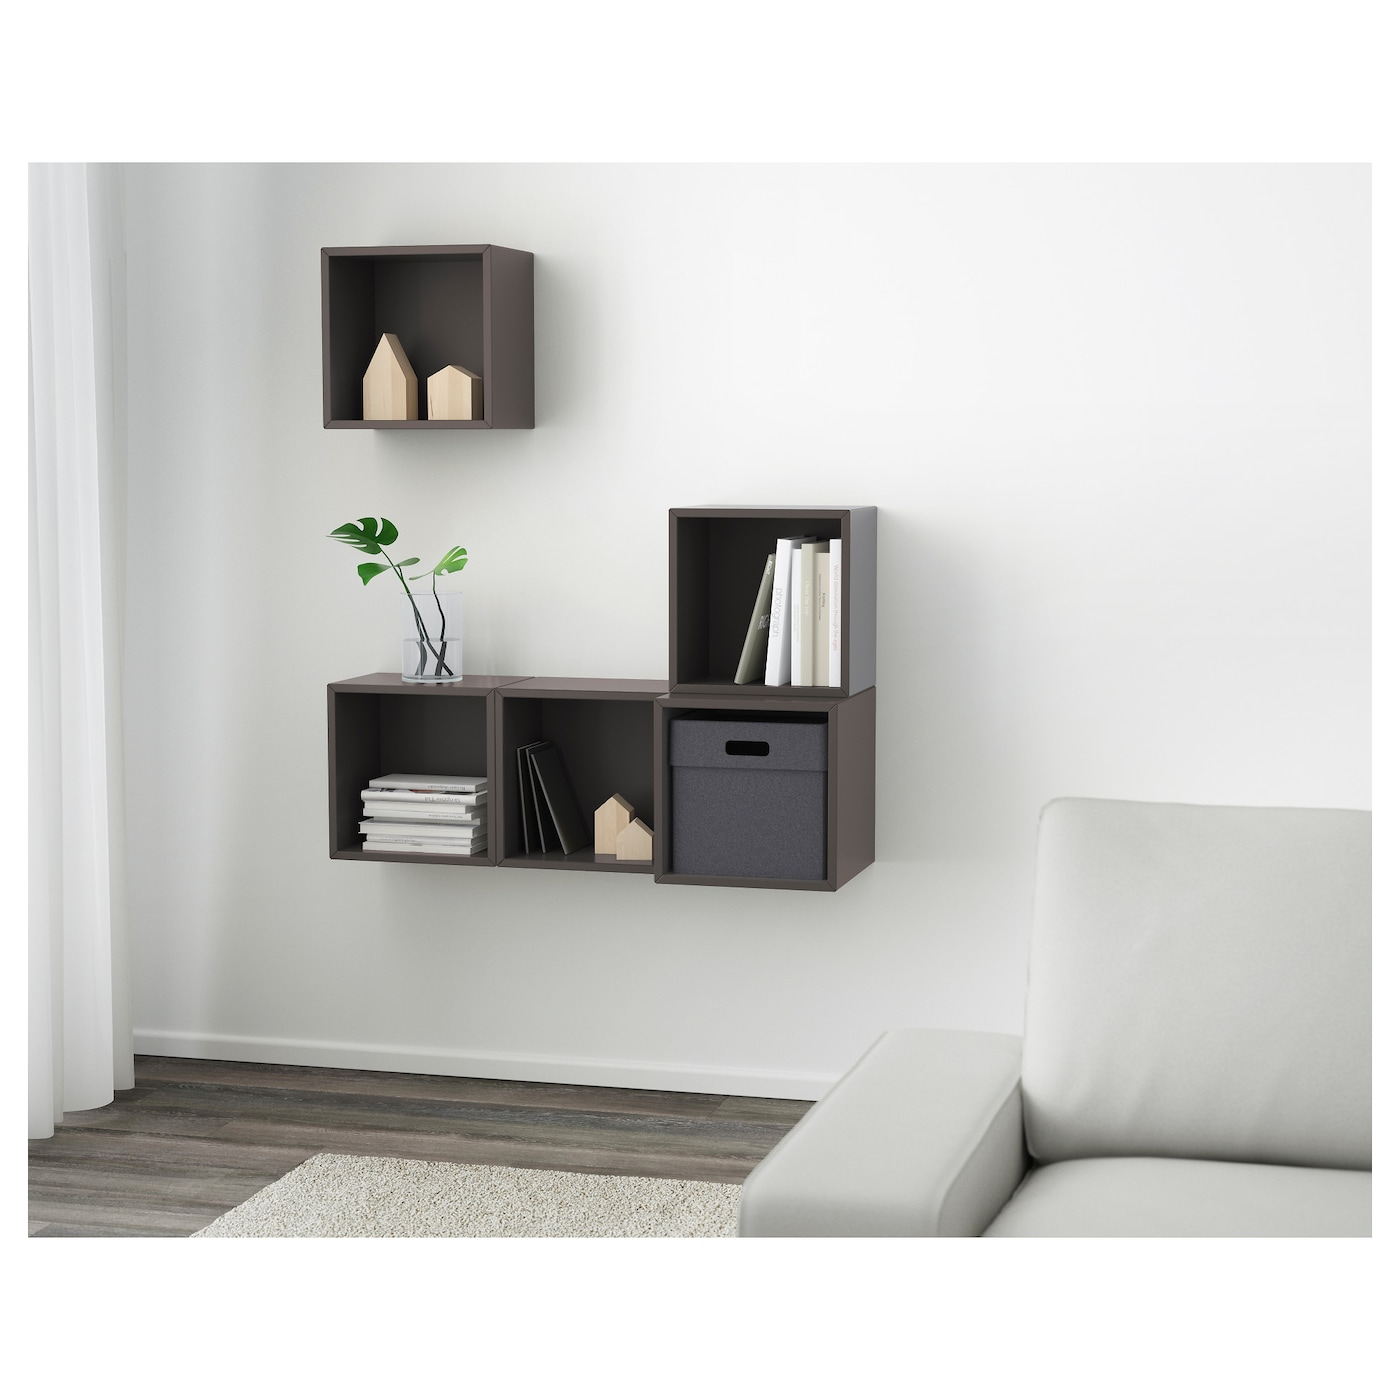 eket kastencombinatie voor wandmontage donkergrijs 105 x 35 x 120 cm ikea. Black Bedroom Furniture Sets. Home Design Ideas